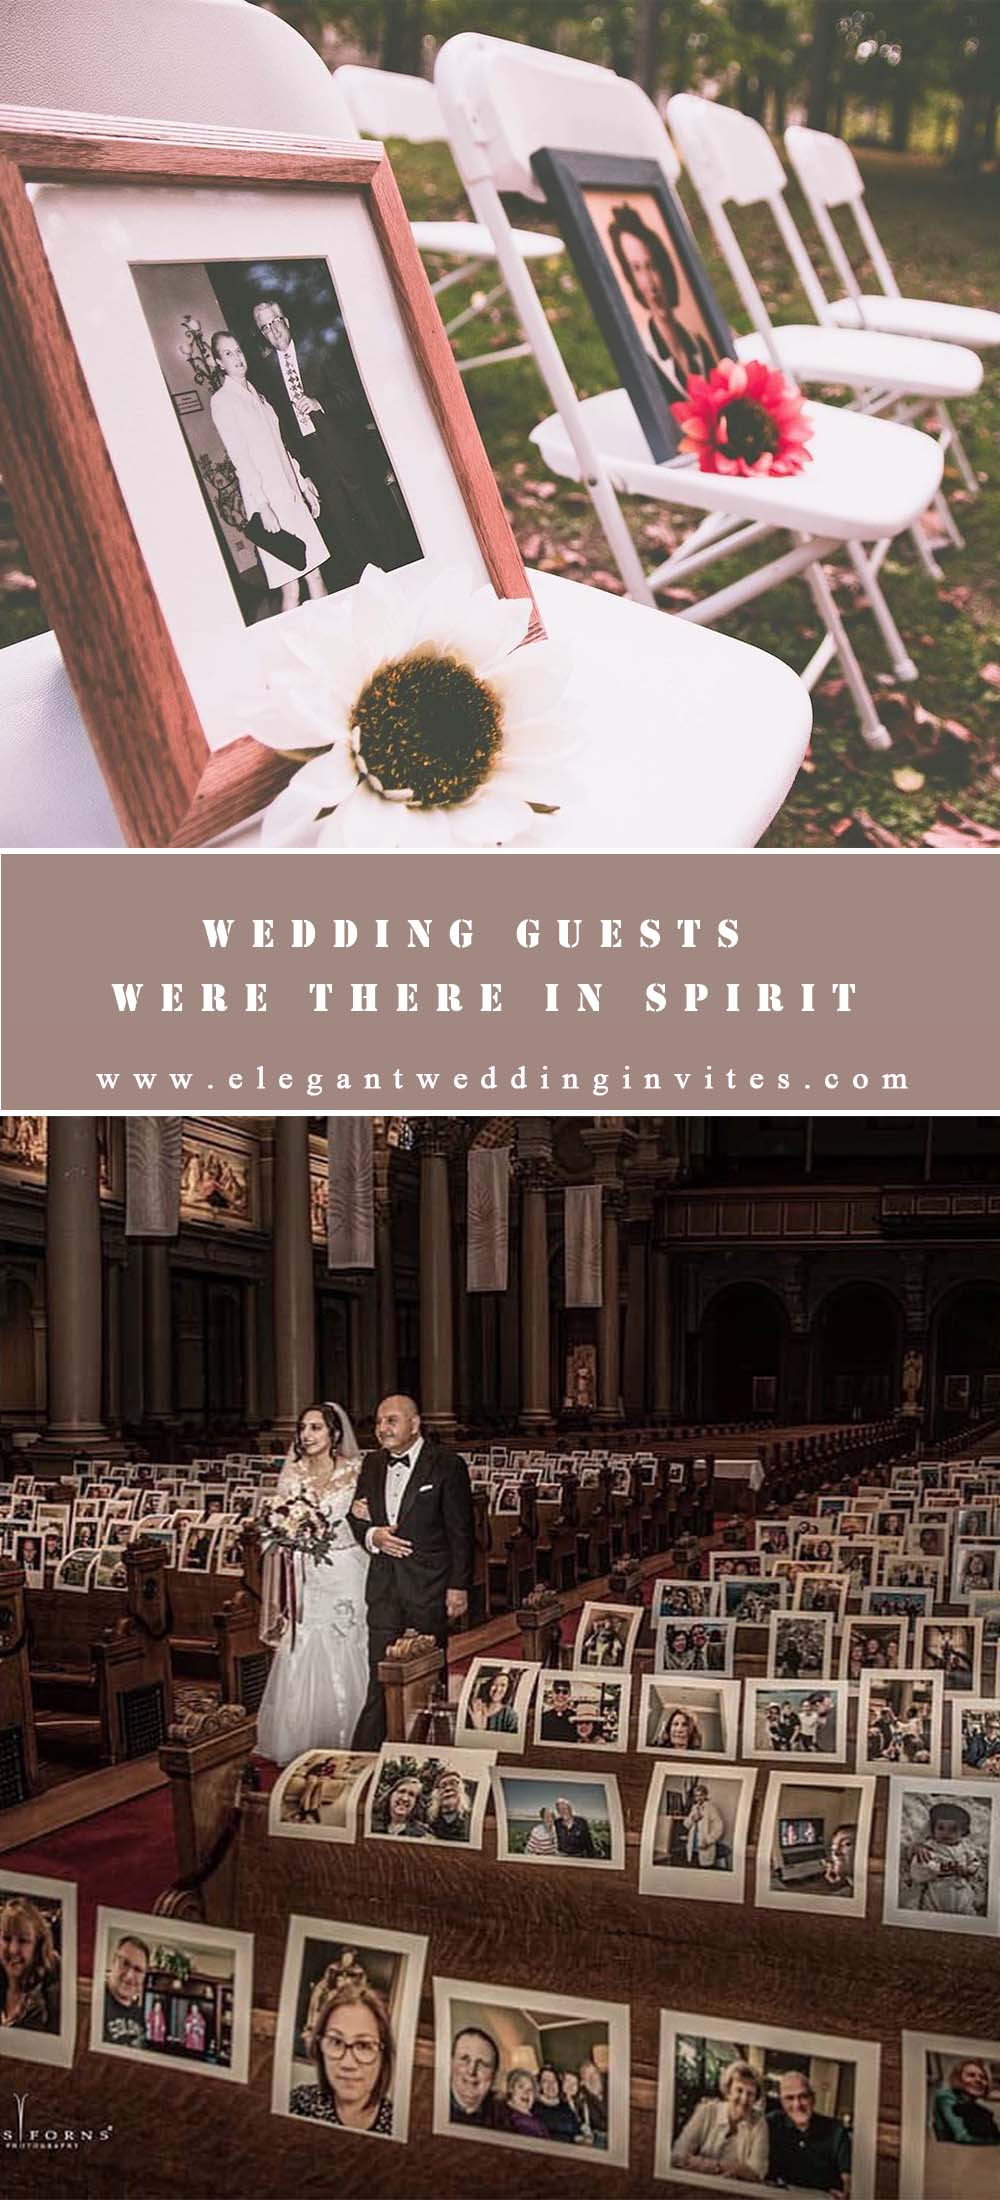 wedding guests were there in spirit with unique photo display ideas